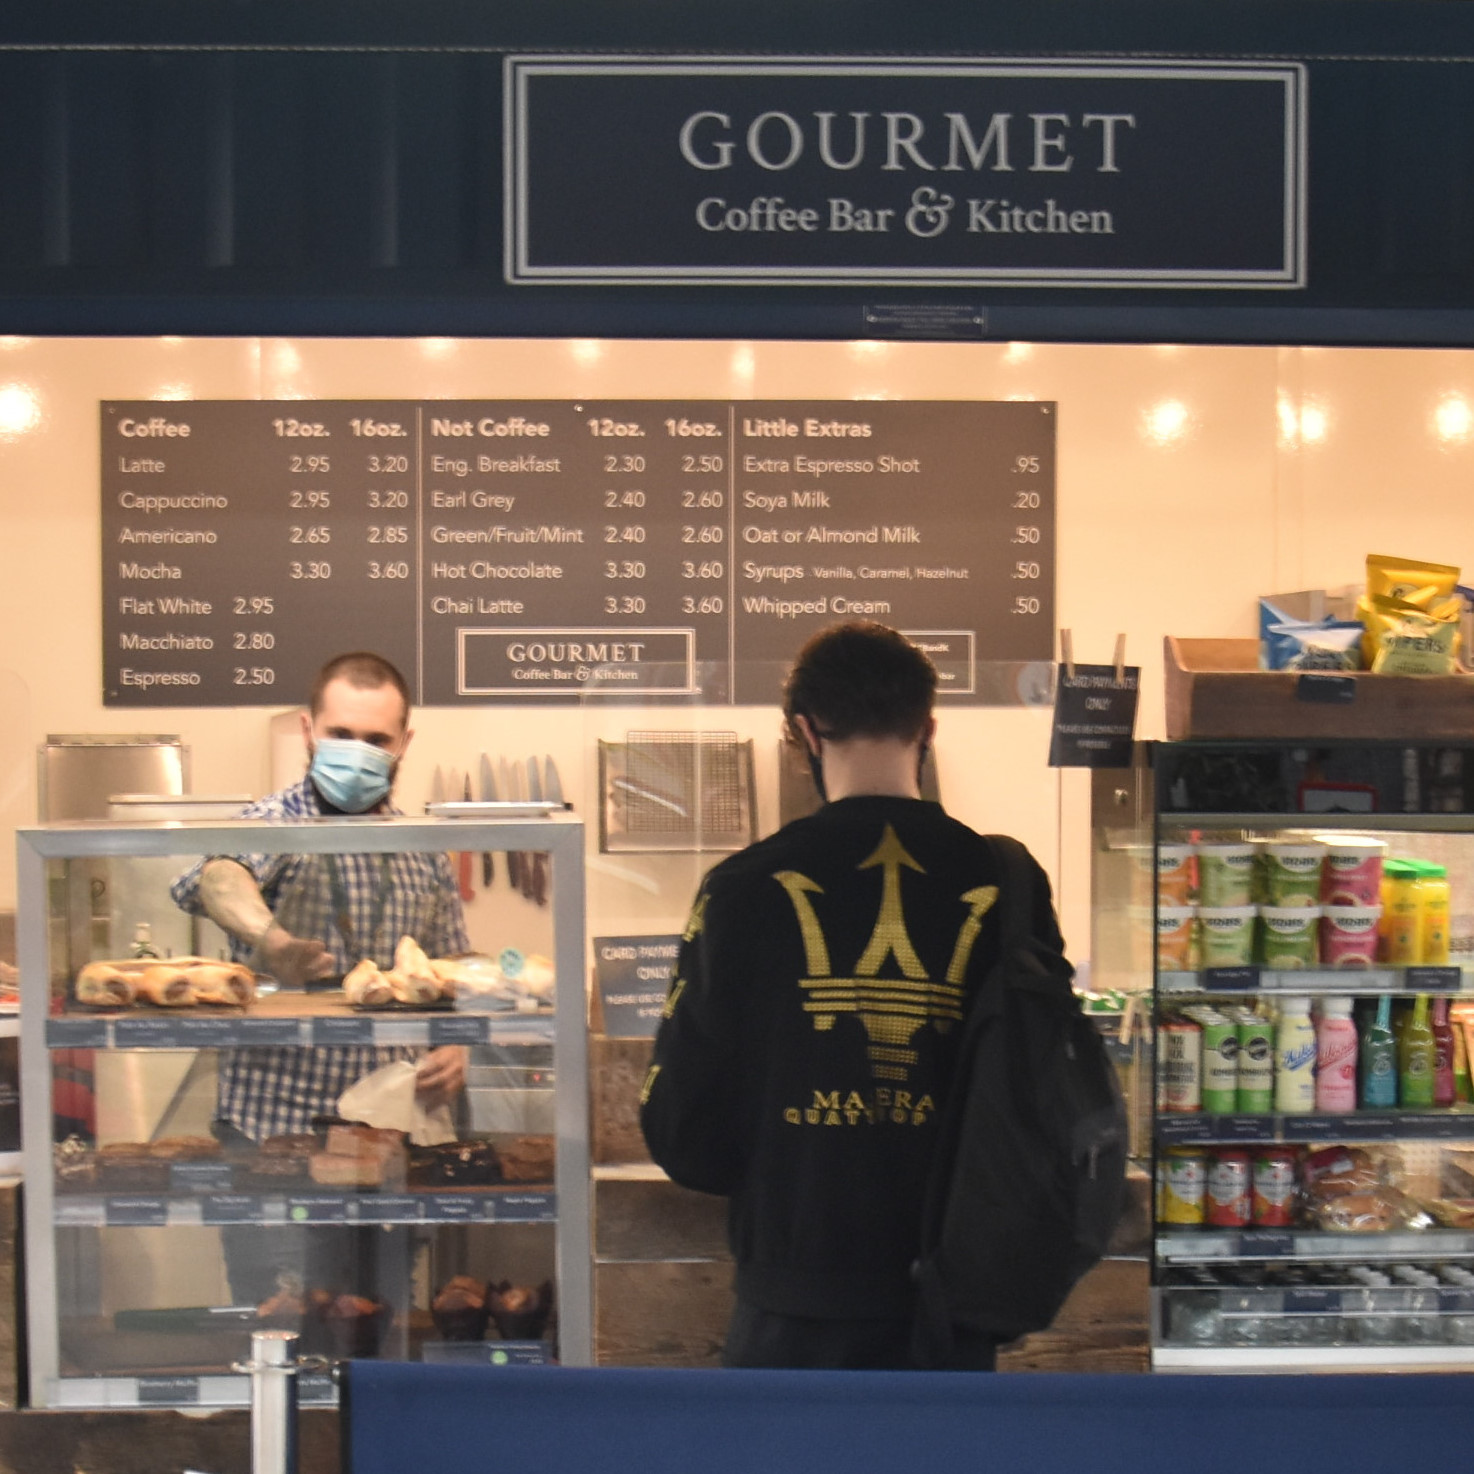 The front of the Gourmet Coffee Bar at the end of Platform 5 in Crewe Station, with its newly-installed Perspex screens, shortly after it reopened during the COVID-19 pandemic.